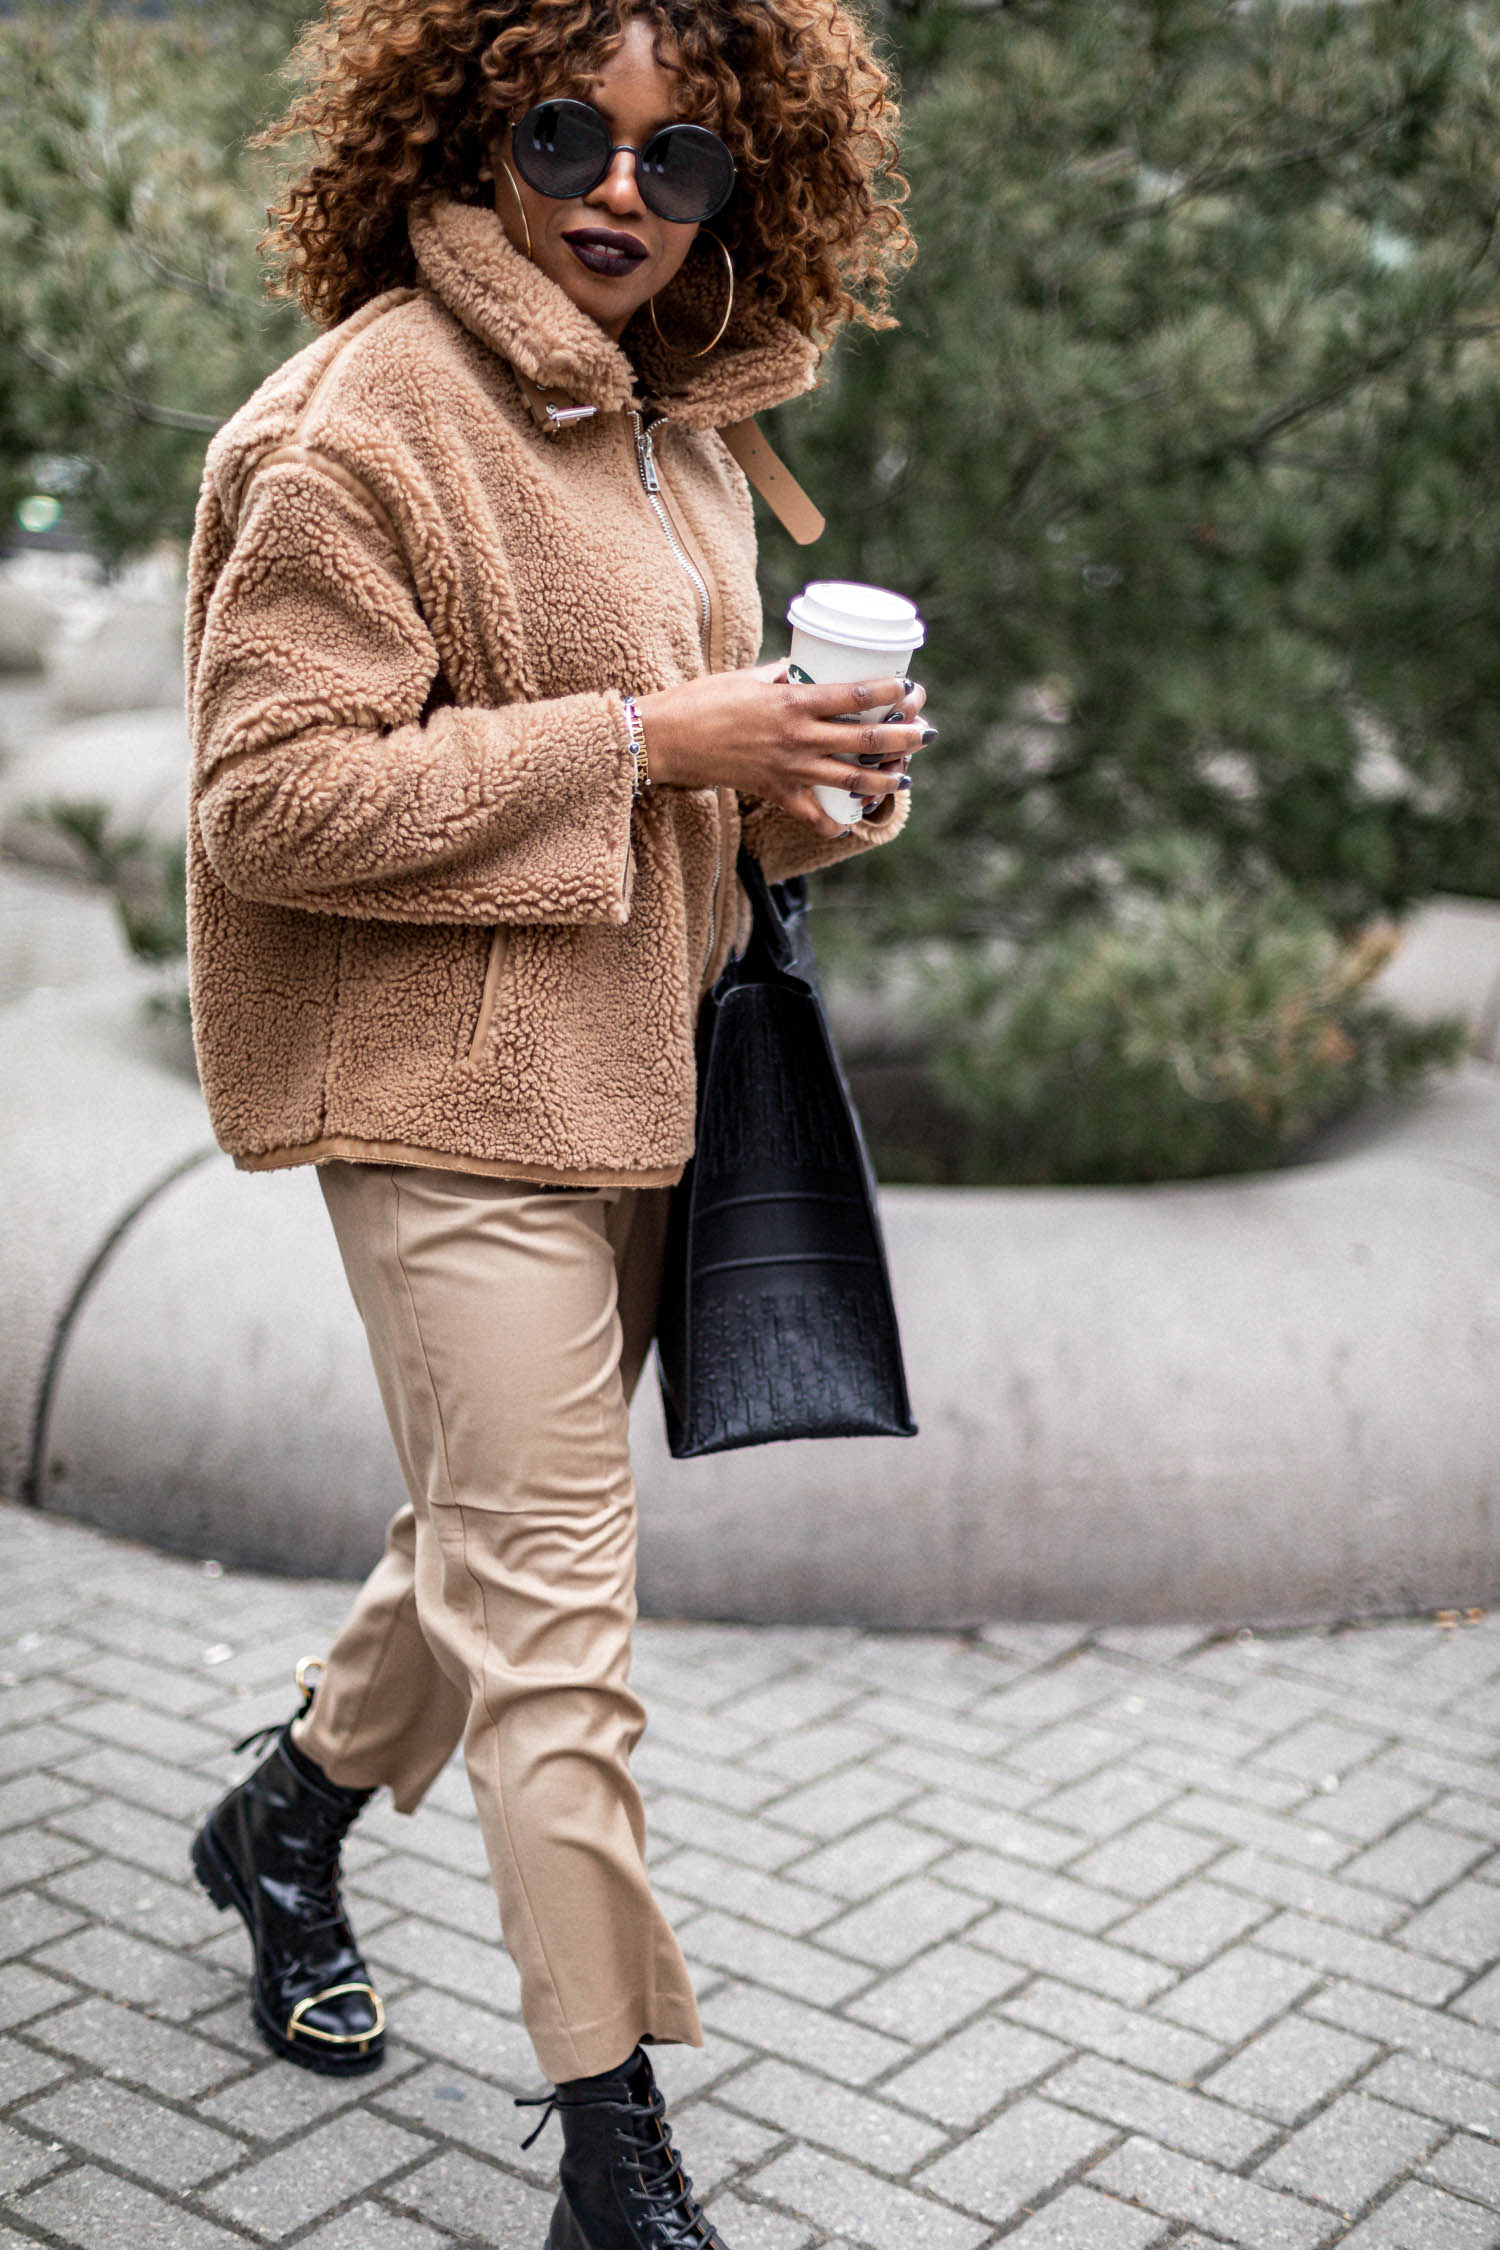 atlanta blogger wearing zara brown teddy jacket in toronto, how to style a teddy coat, why teddy coats are on trend, top blogger, style tips, how to style a teddy coat, are teddy coats warm, winter coats, toronto street style, coat trends, coat styles, top coats in 2020, coats to buy, what coats to buy in 2020